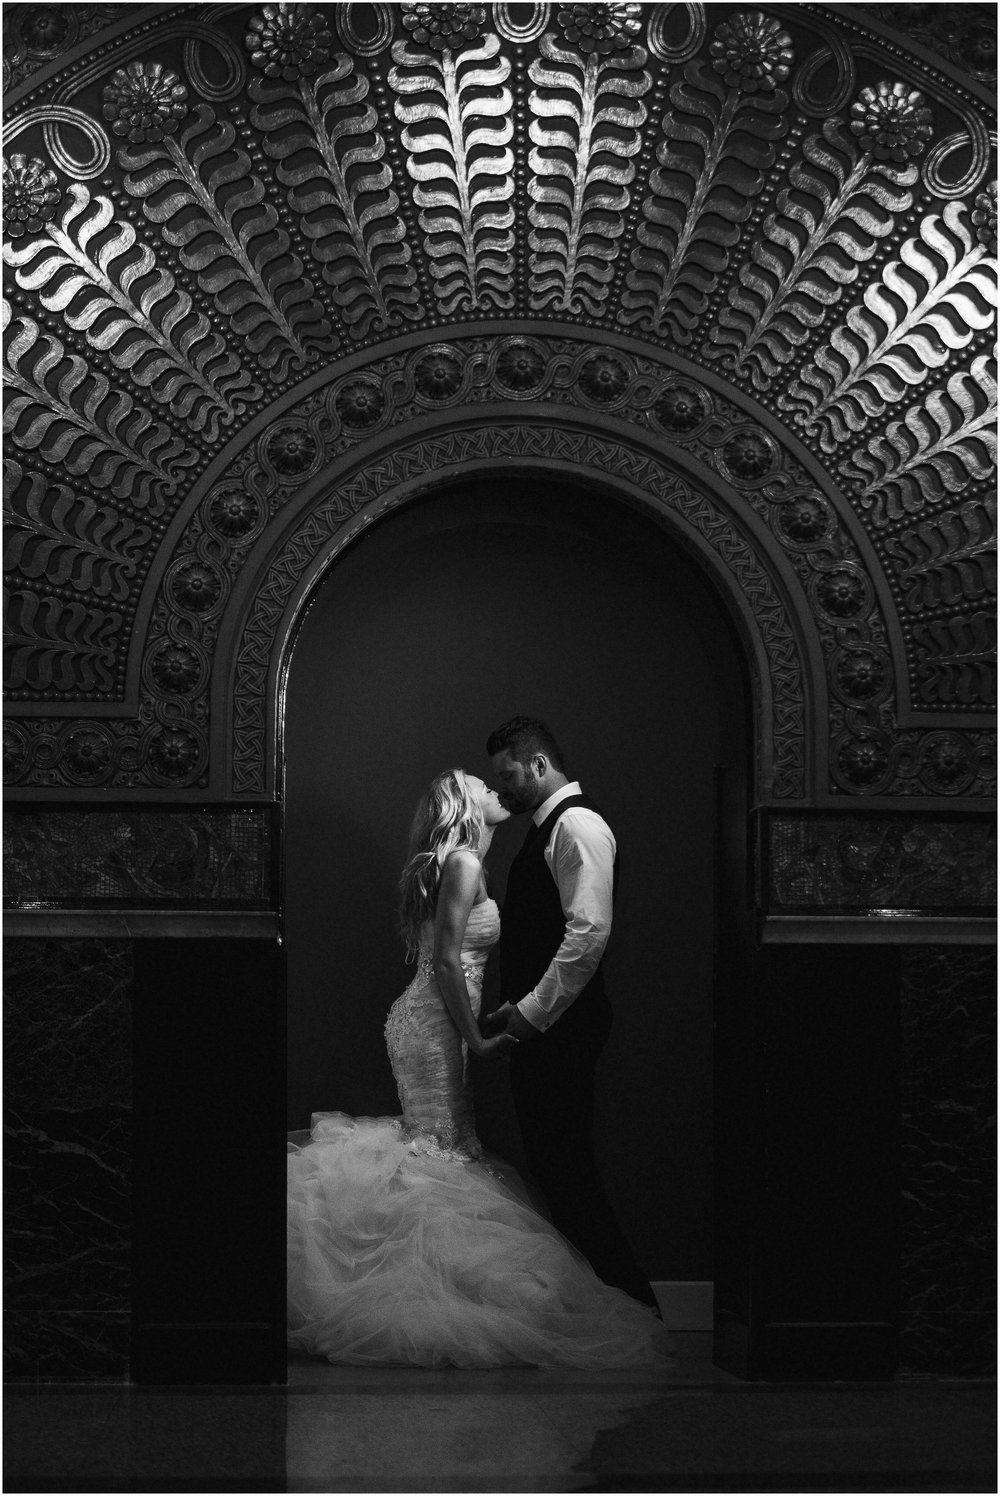 01 Black label - 10 hours of Wedding day coverageOnline gallery of digital images from your Wedding day12x12 or 14x11 Fine Art Wedding Album | 40 pagesHandcrafted linen or wooden wedding album boxComplimentary Engagement SessionTwo Photographers20x30 Acrylic Print$7800